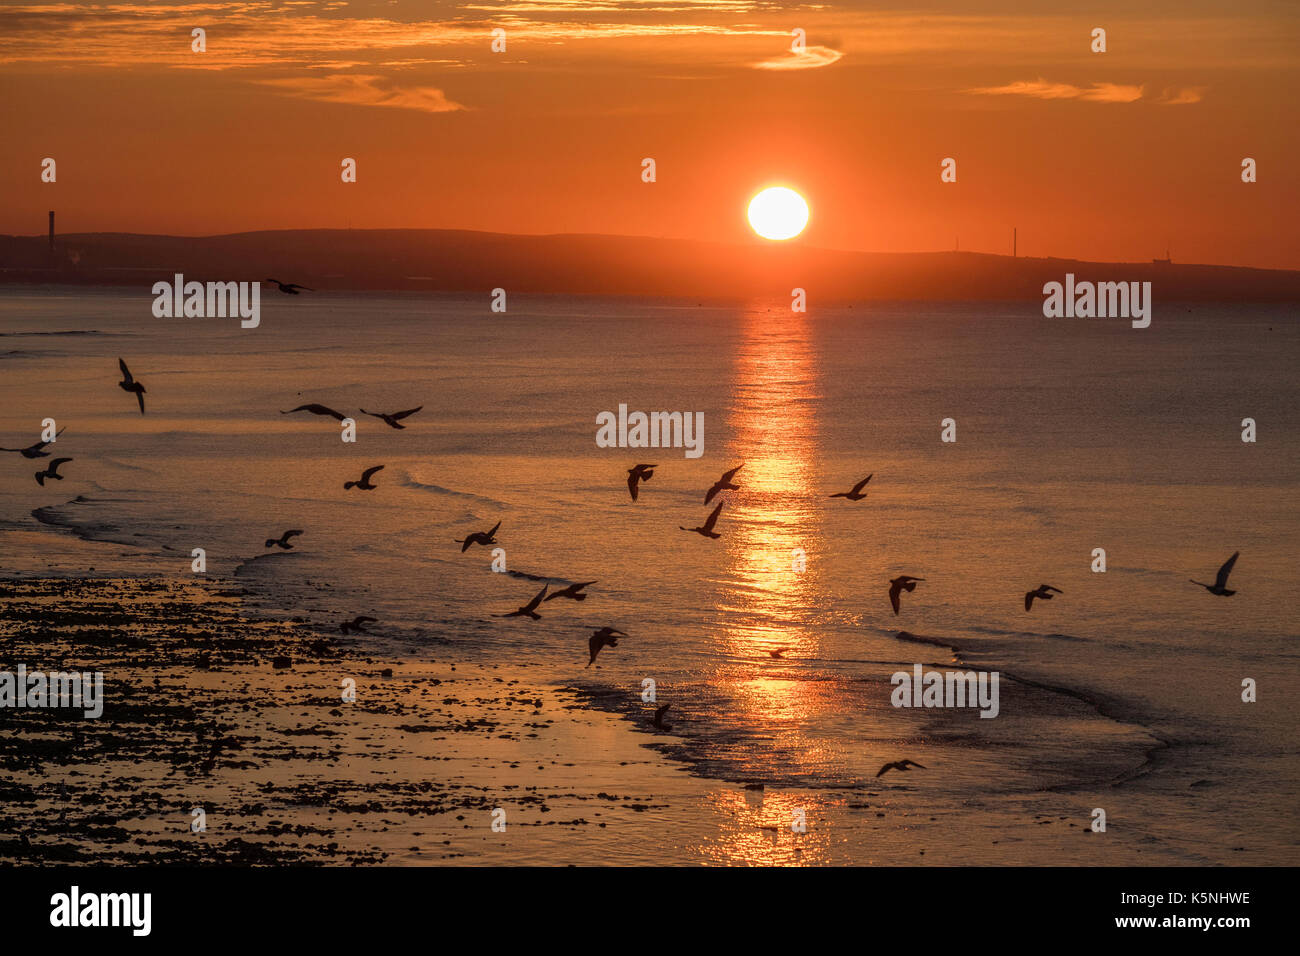 Worthing West Sussex UK, Sunday 10 th September 2017. UK Weather, As the sun rises it makes a glorious start to the day in Worthing West Sussex. © Photovision Images / Alamy Live news. - Stock Image